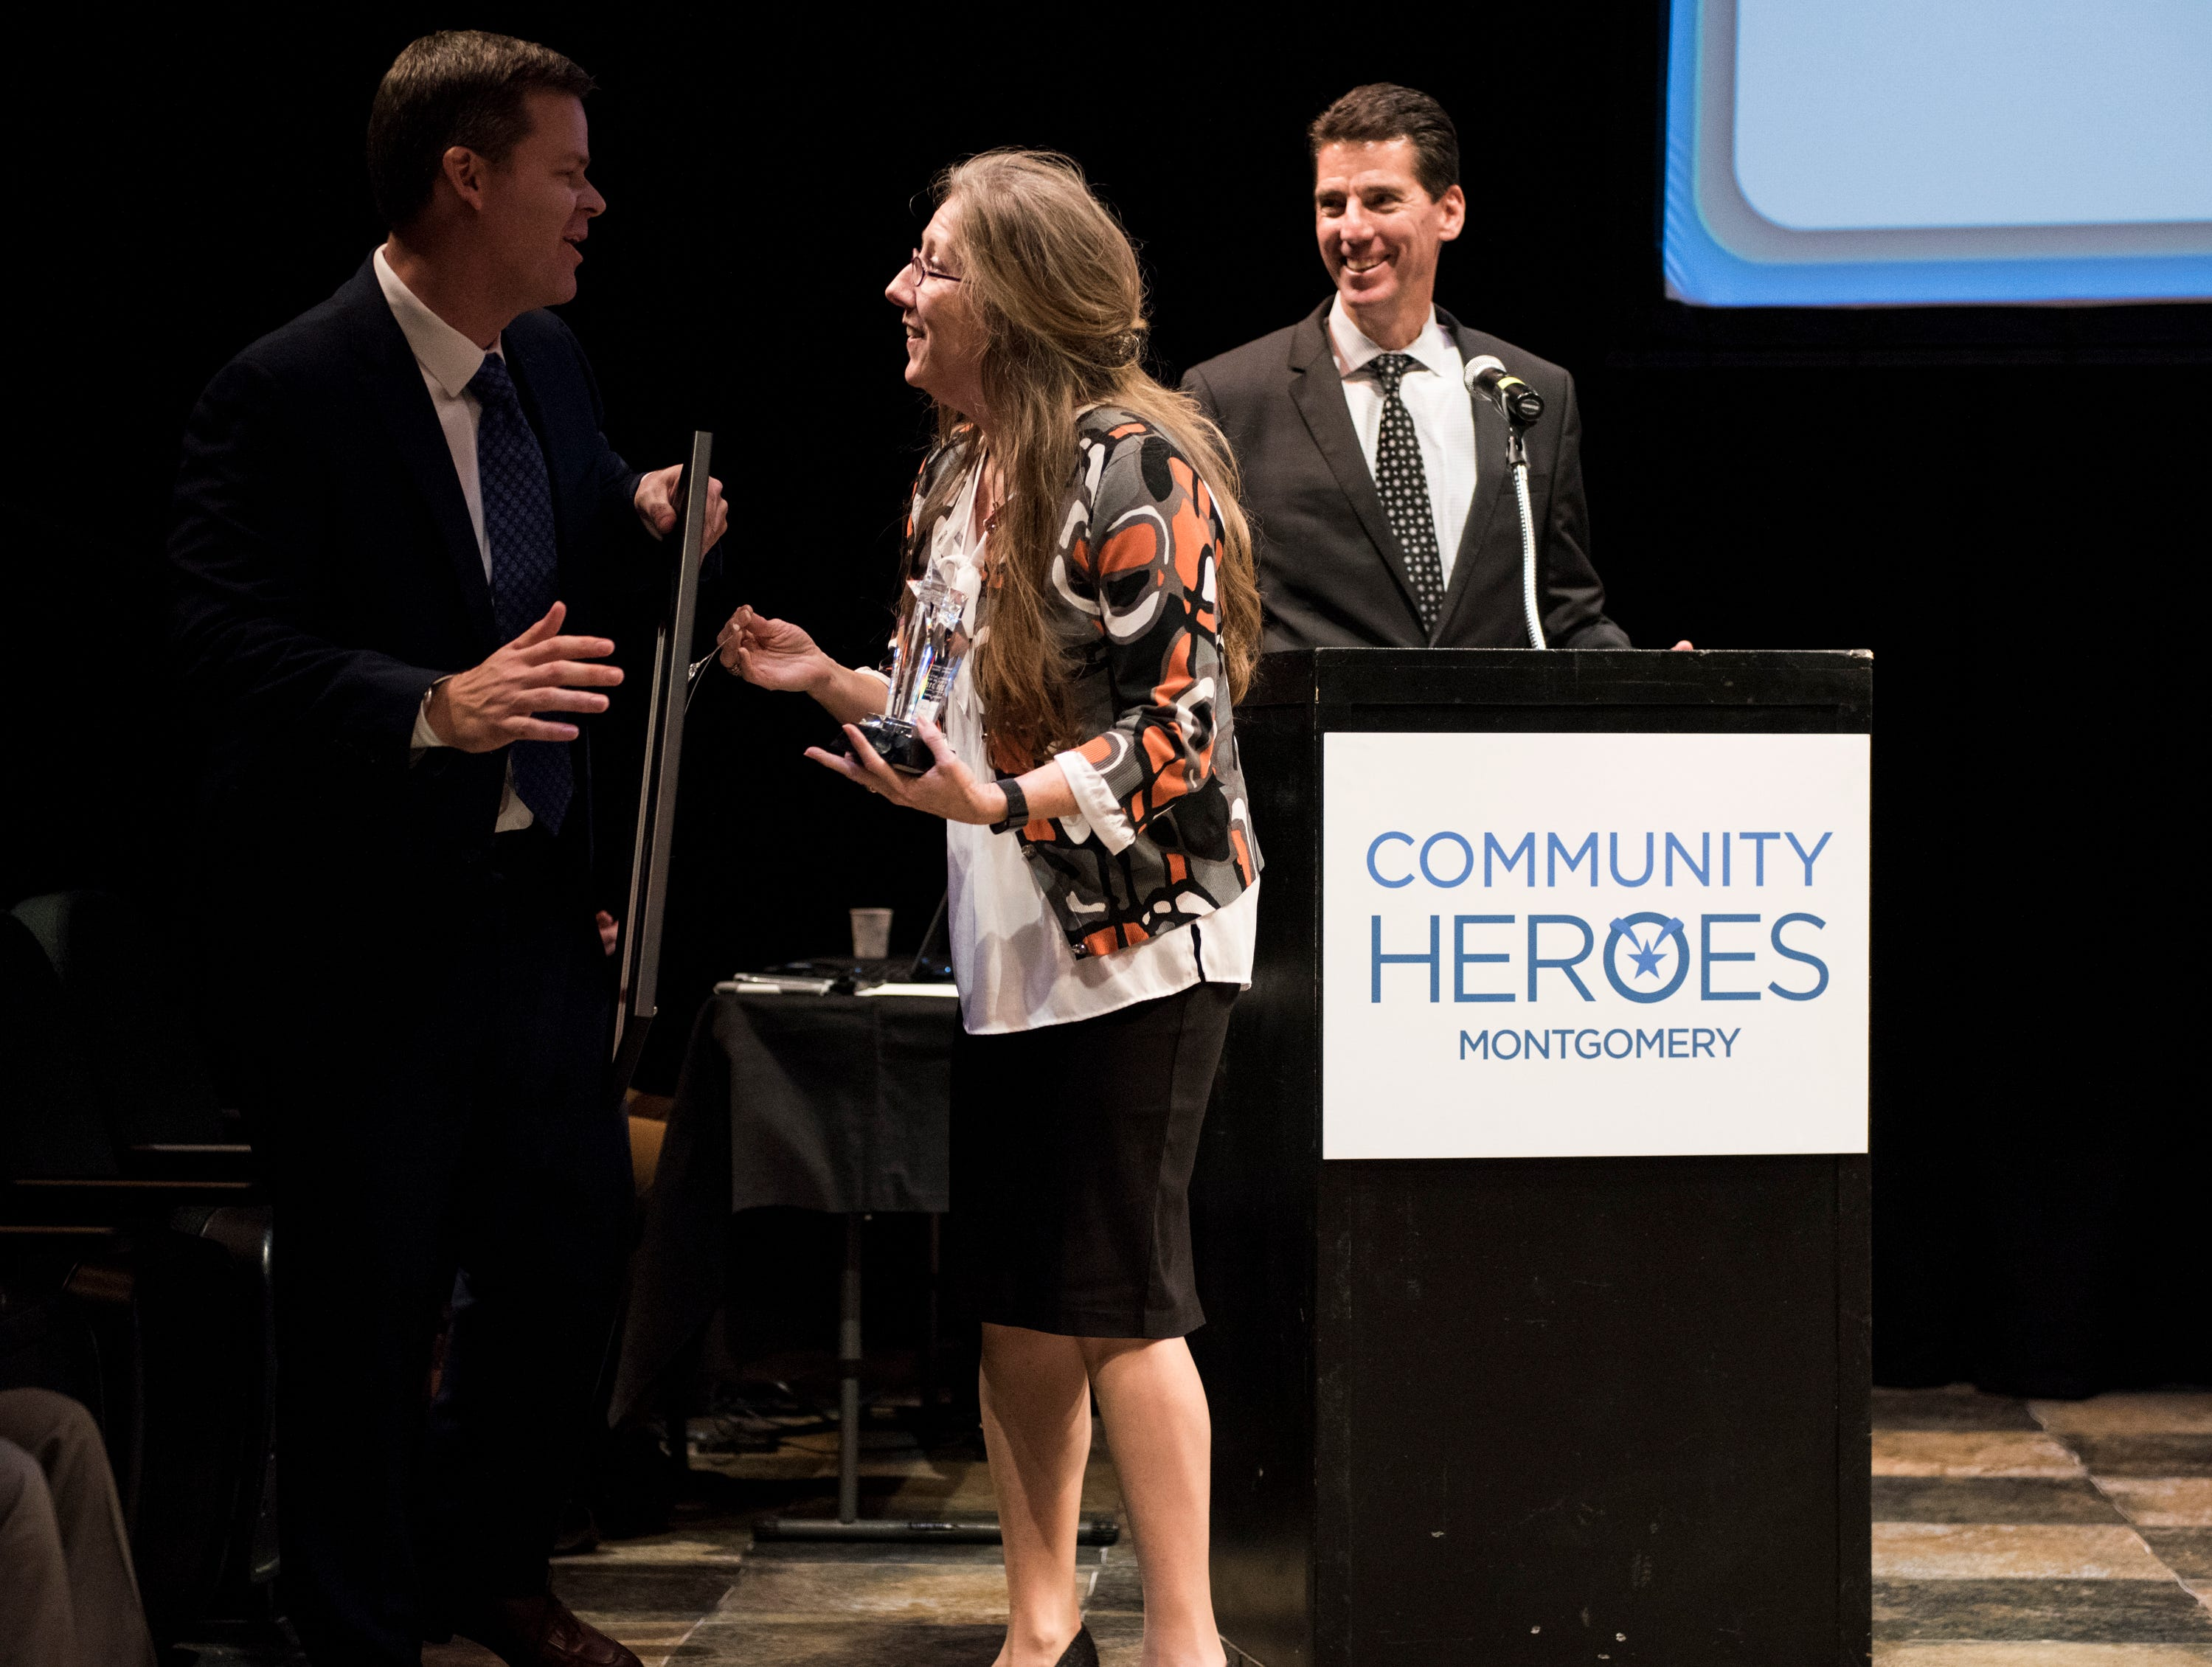 Montgomery Advertiser executive editor Bro Krift congratulates Community Hero of the year LaDonna Brendle during the Community Heroes awards ceremony at Alabama Shakespeare Festival in Montgomery, Ala., on Tuesday, Jan. 8, 2019.